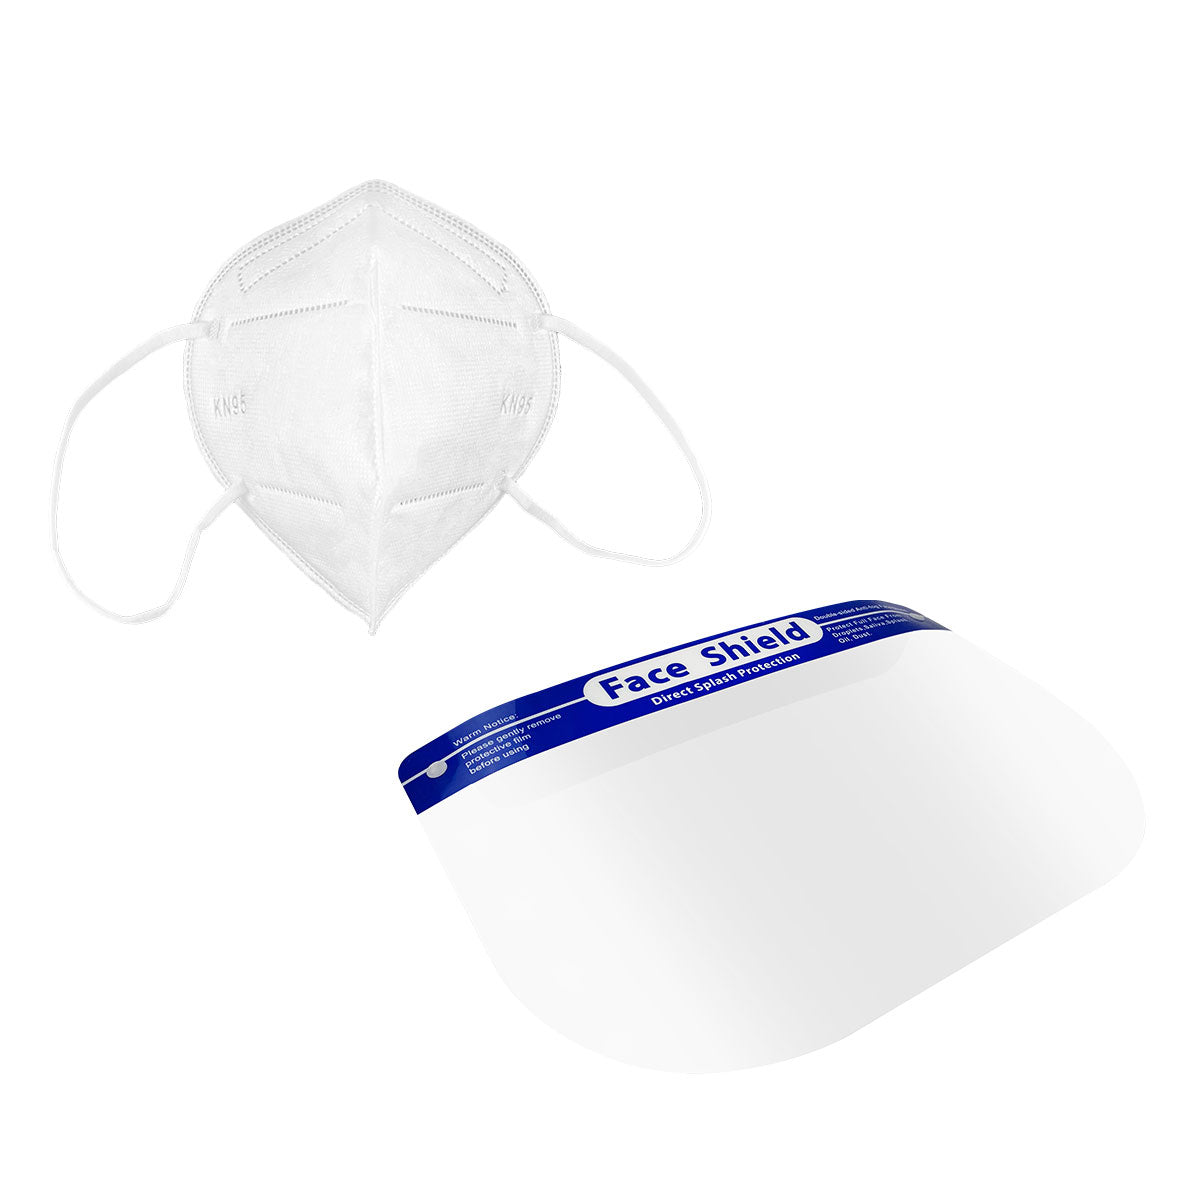 Face Shield + 5 PACK - KN95 /FFP2 4-Layer Fitted Disposable Mask